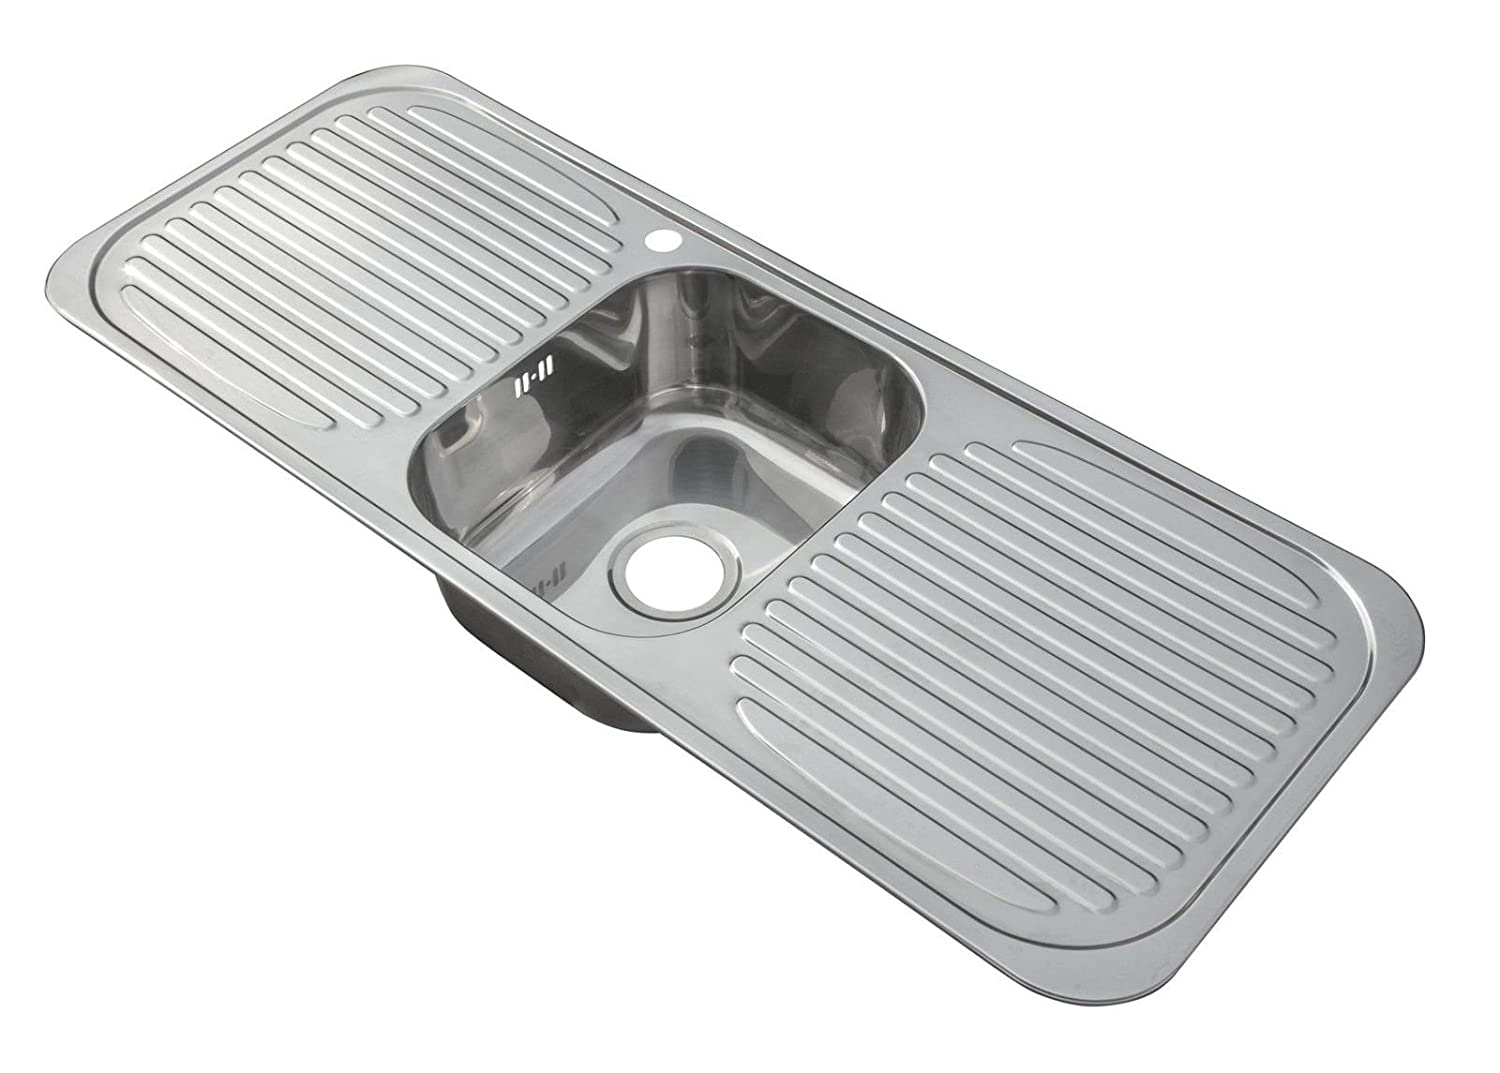 Good Inset Stainless Steel Single Bowl Kitchen Sink With 2 Drainers Large (C01):  Amazon.co.uk: DIY U0026 Tools Design Inspirations